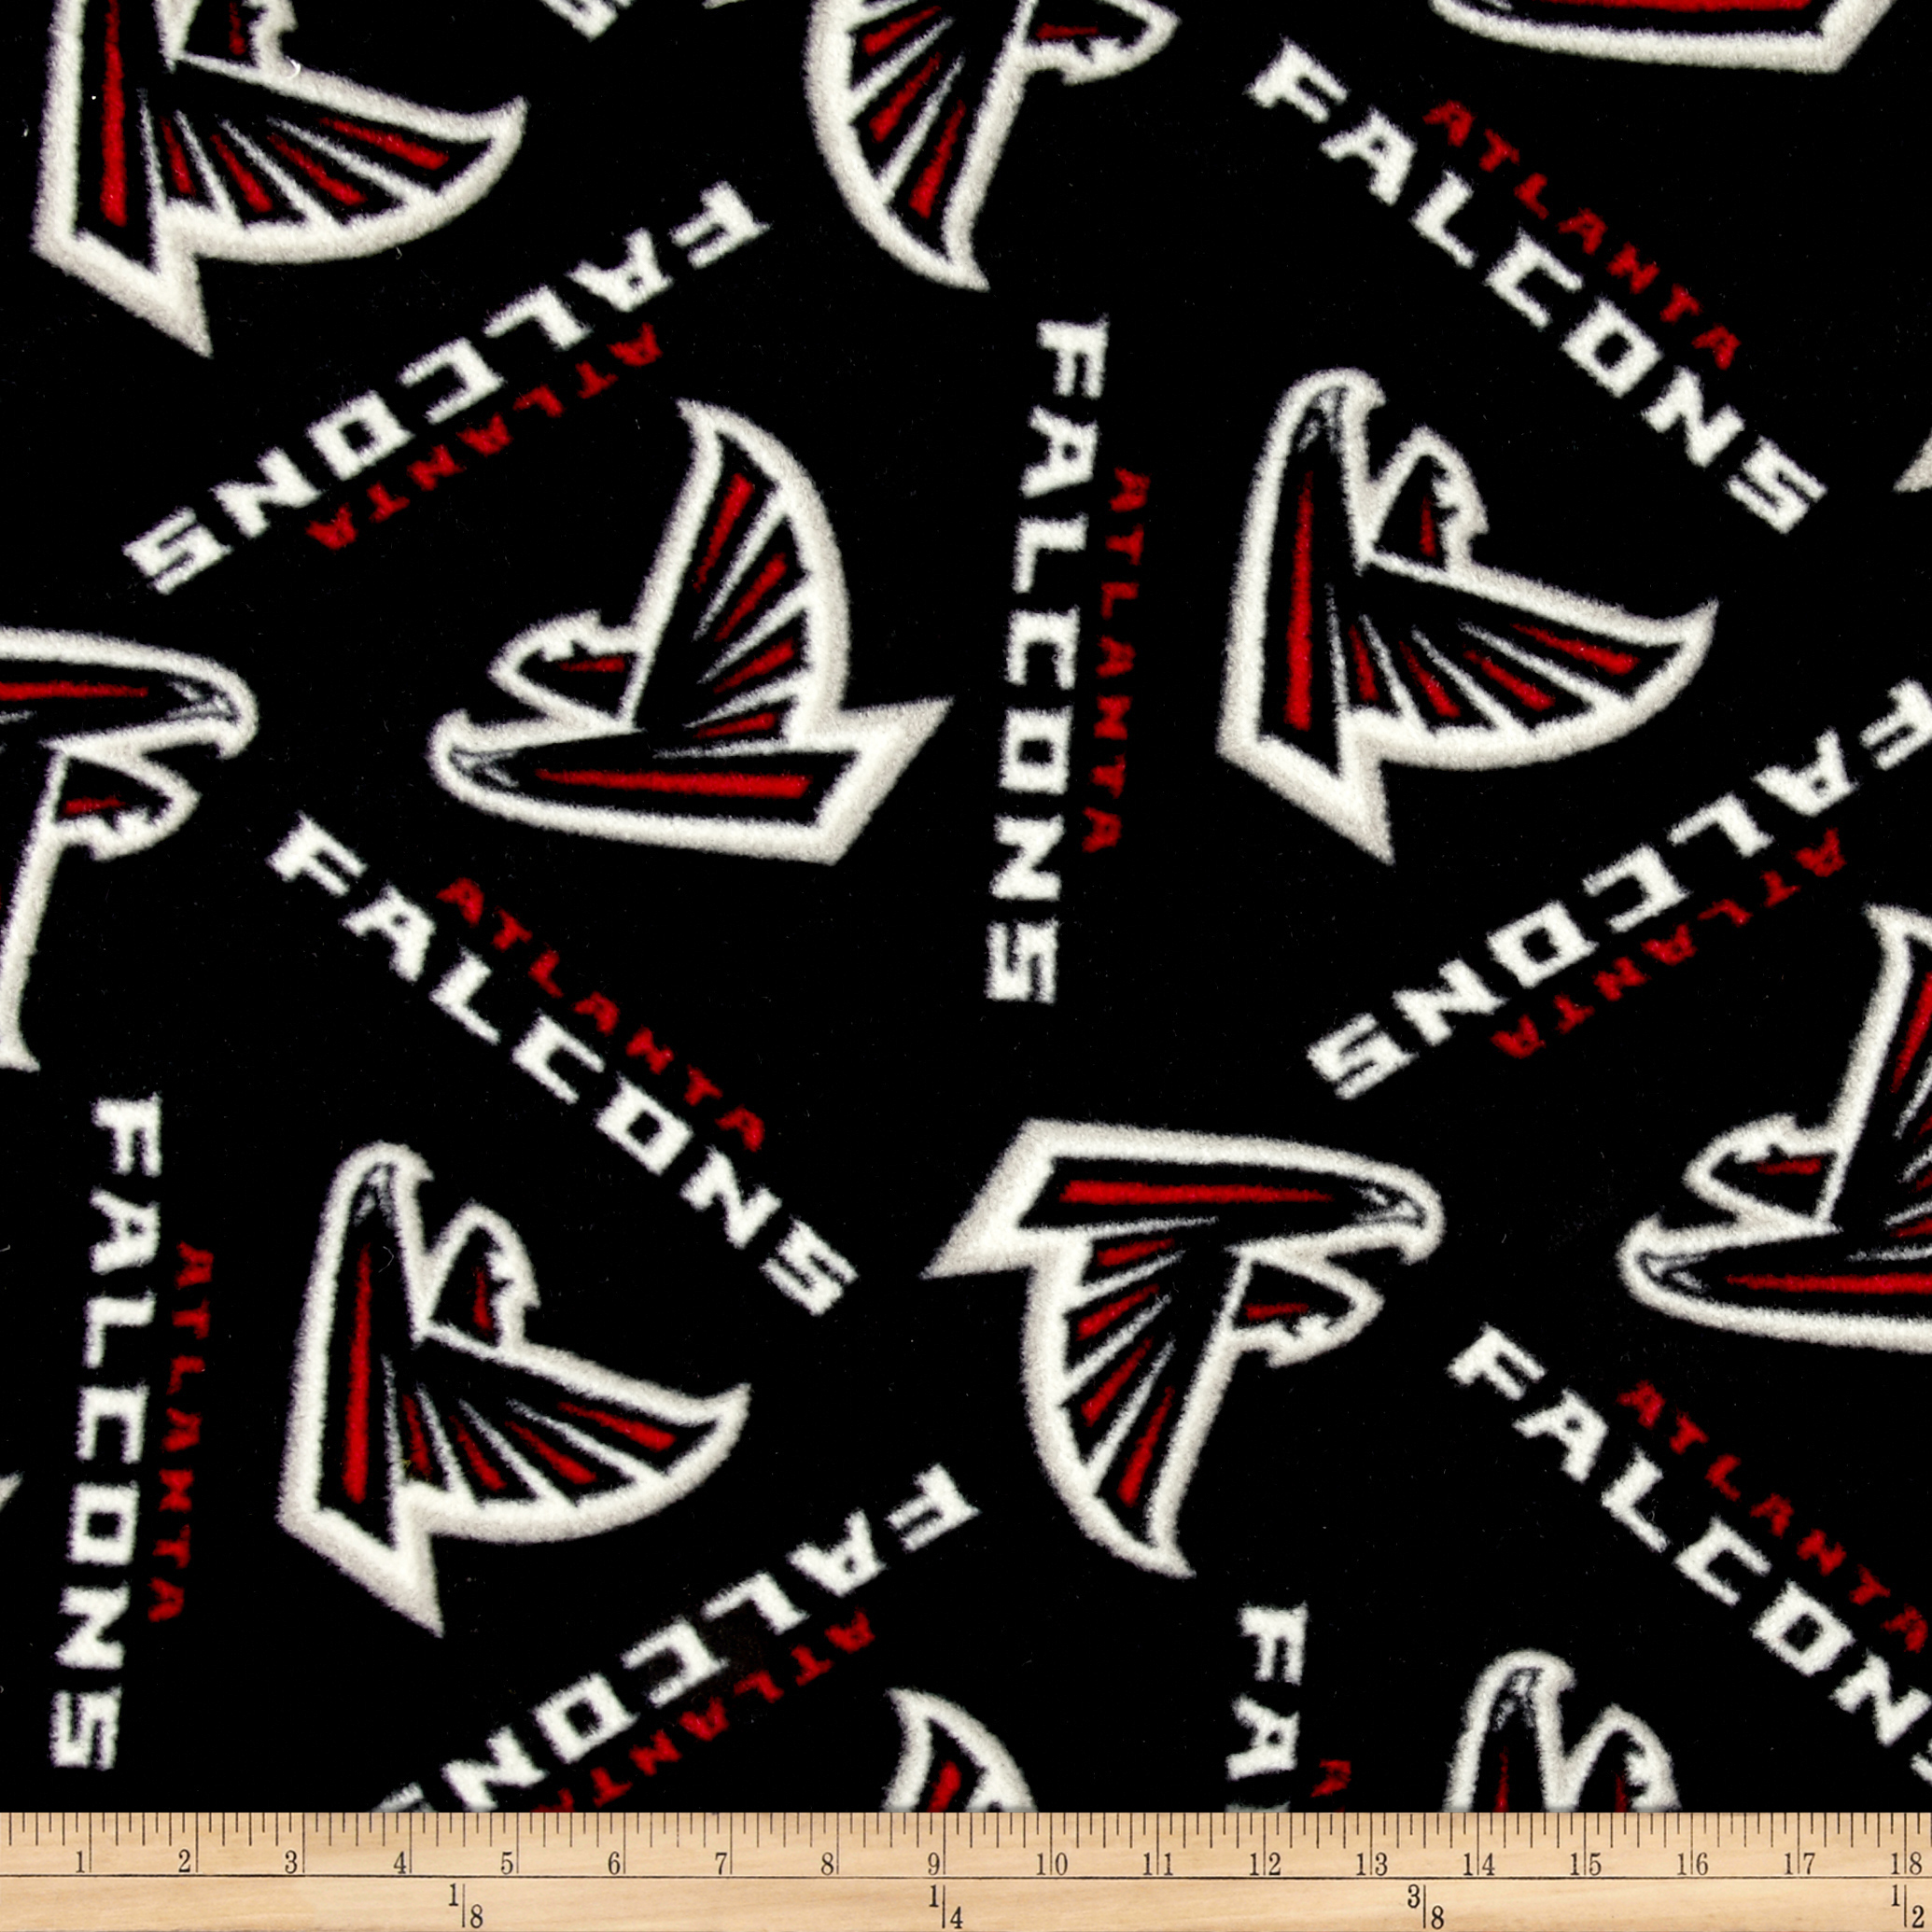 NFL Fleece Atlanta Falcons Black/Red Fabric